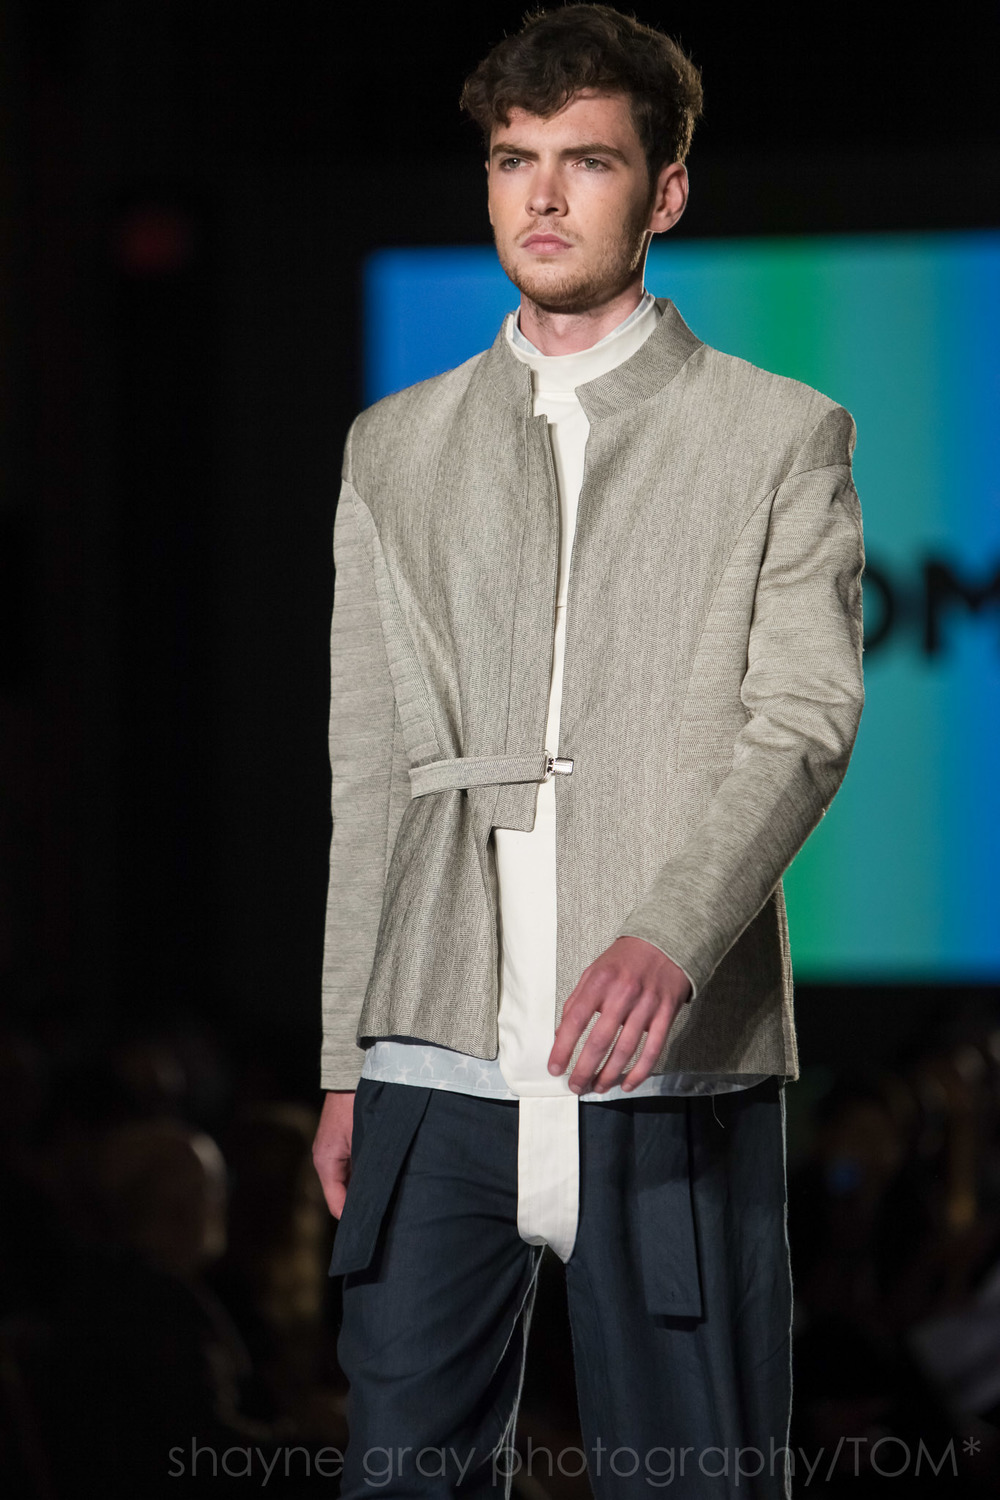 Shayne-Gray-Toronto-men's-fashion_week-TOM-christian-l'enfant-roi-6467.jpg